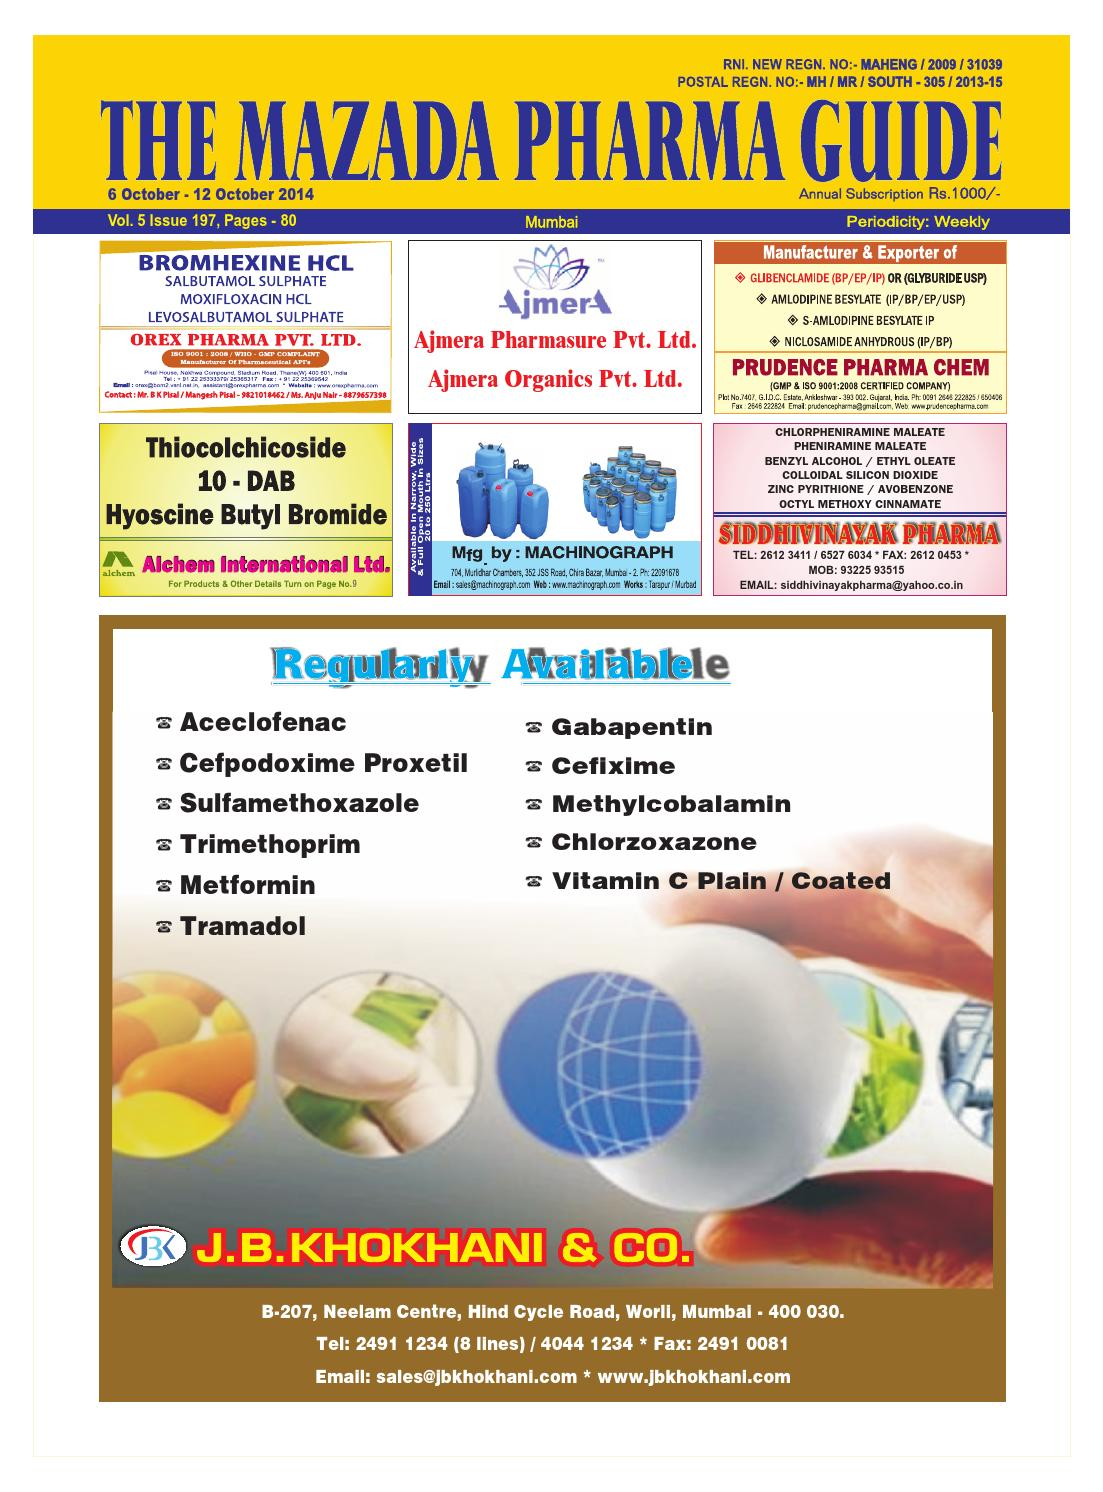 The mazada pharma guide 6th oct 12th oct 2014 by The Mazada